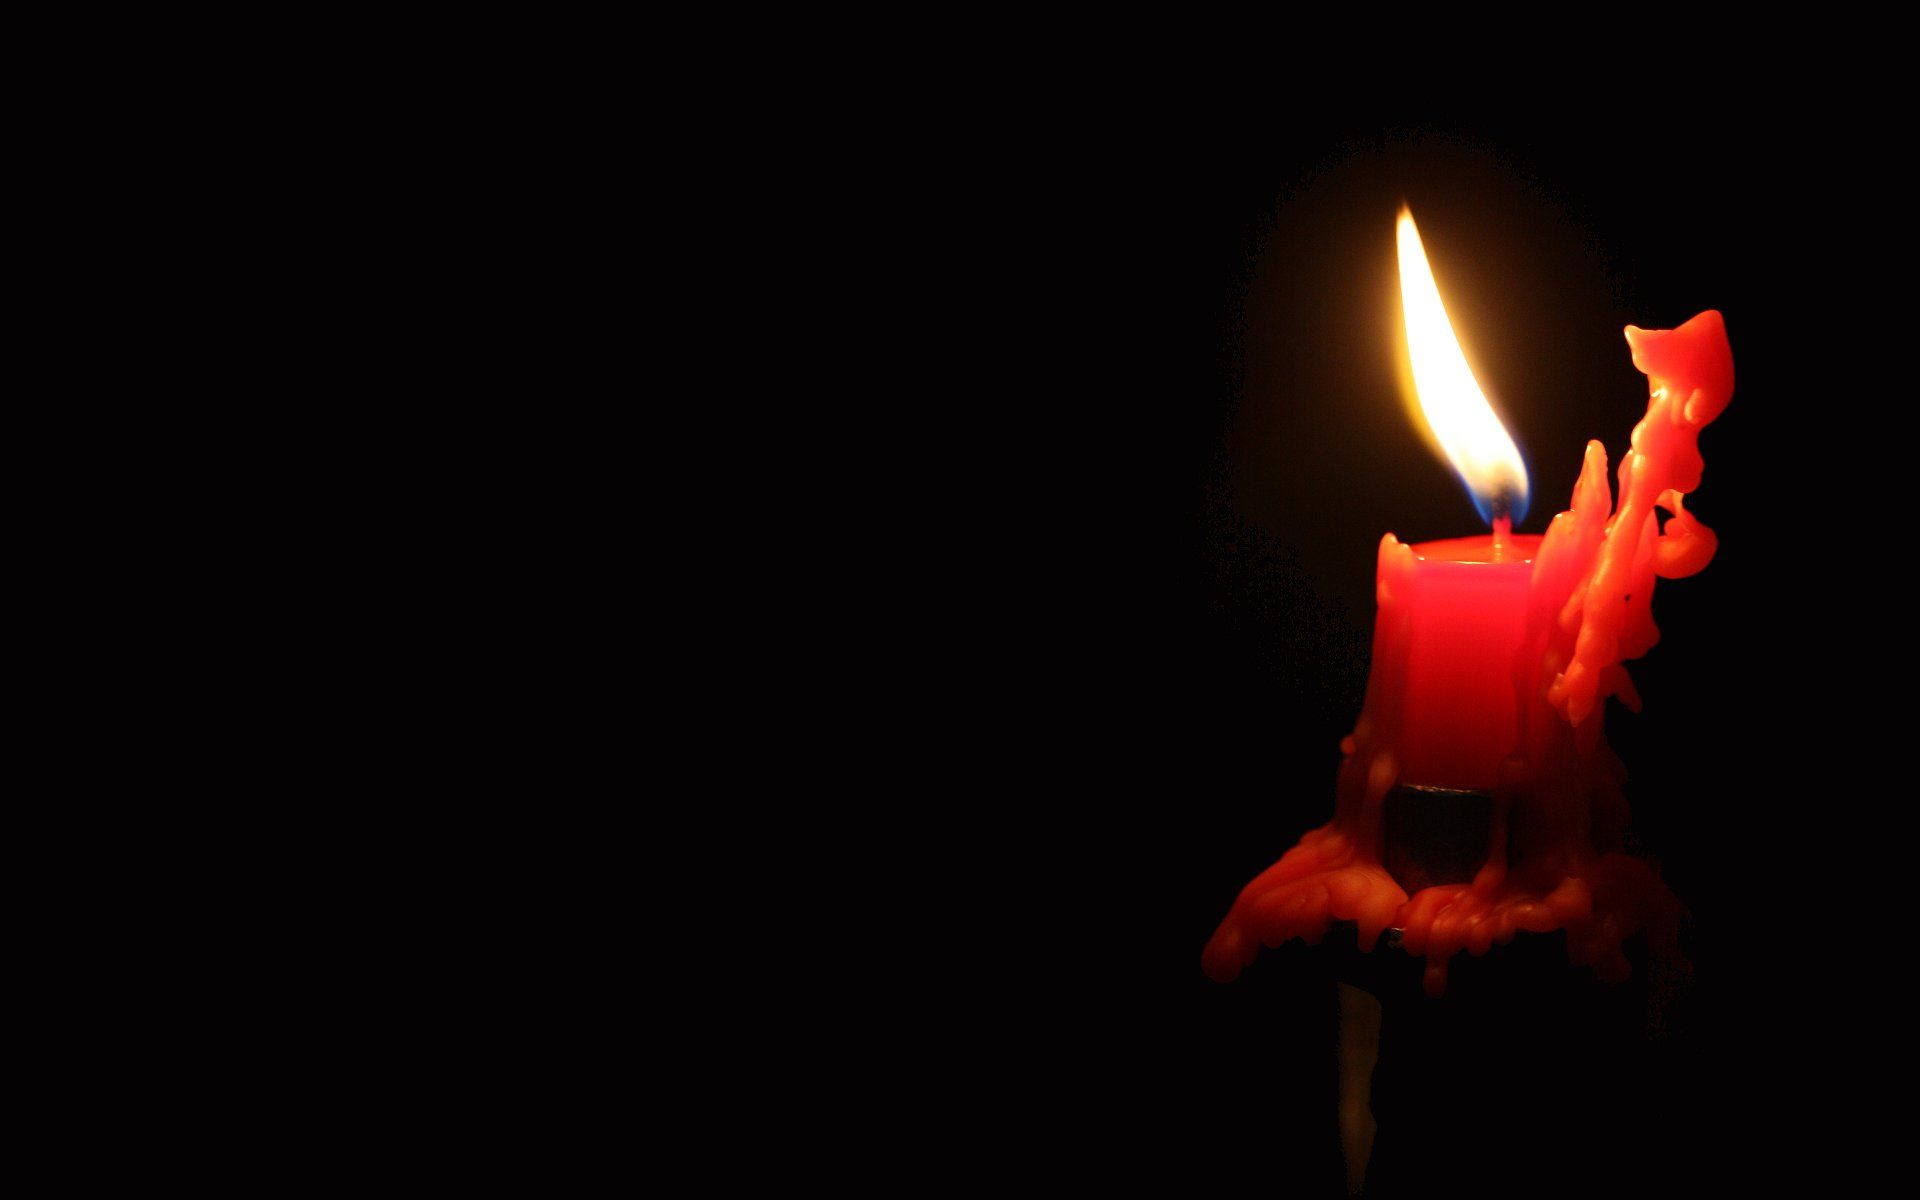 Candle Wallpaper Posted By Christopher Johnson